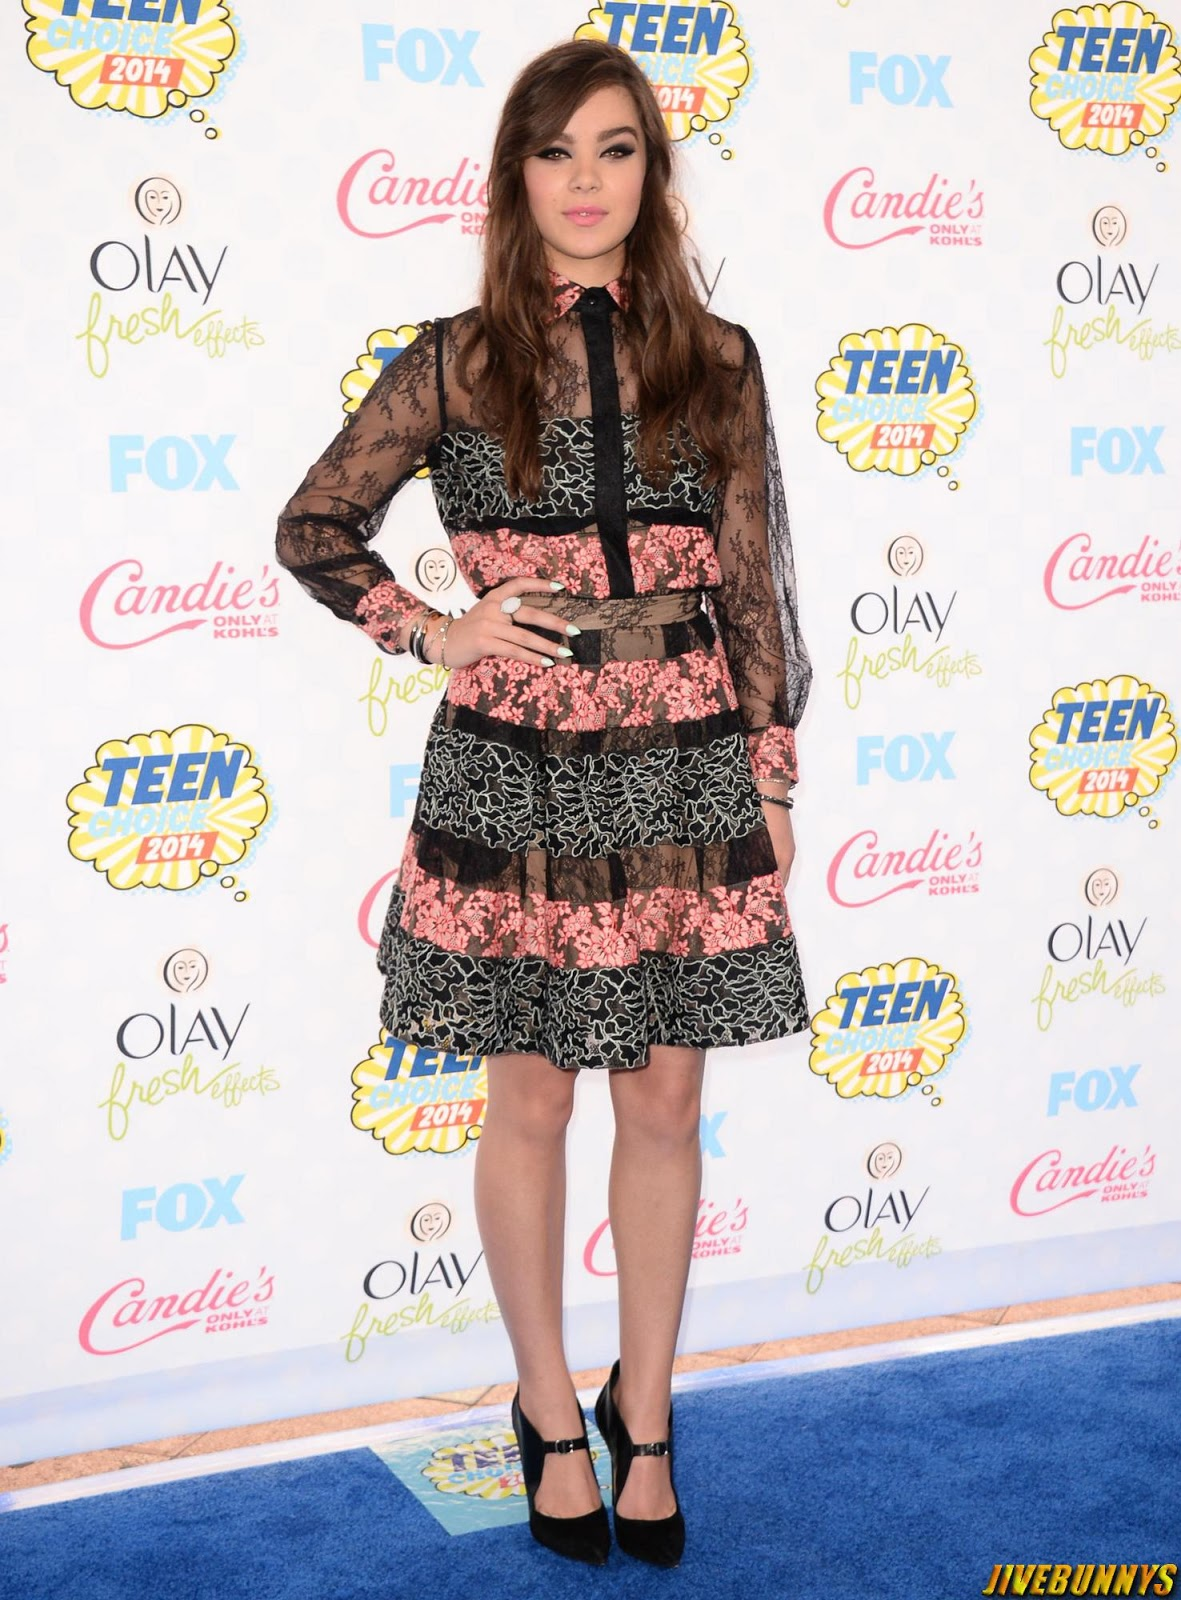 2014 Teen Choice Awards - Los Angeles - August 10, 2014